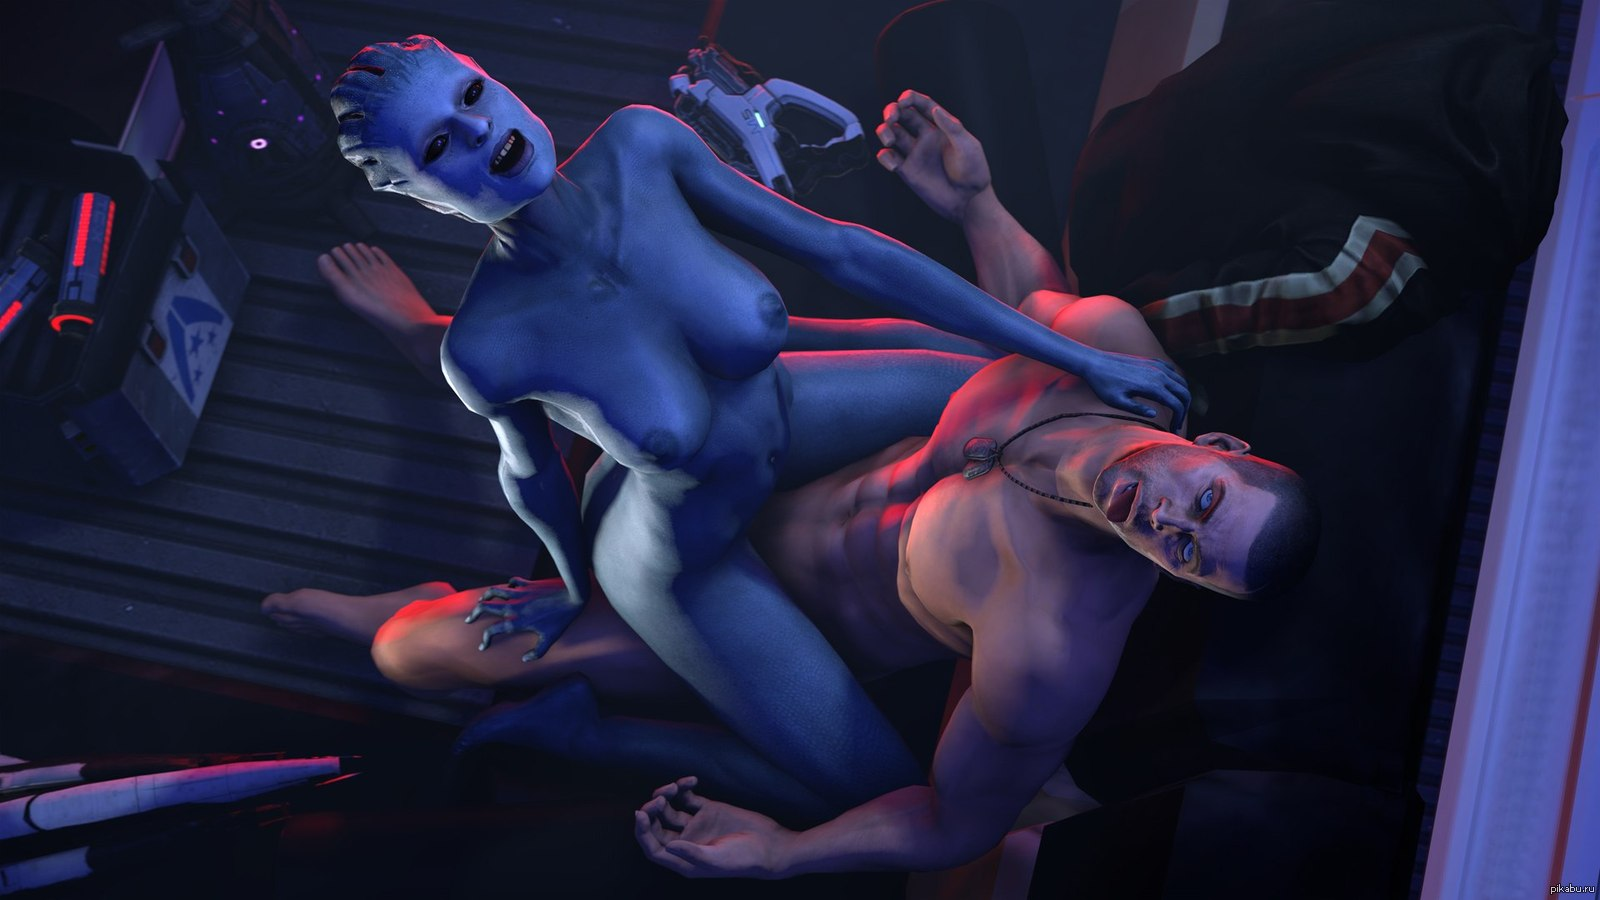 Sexy mass effect photo hentai photo